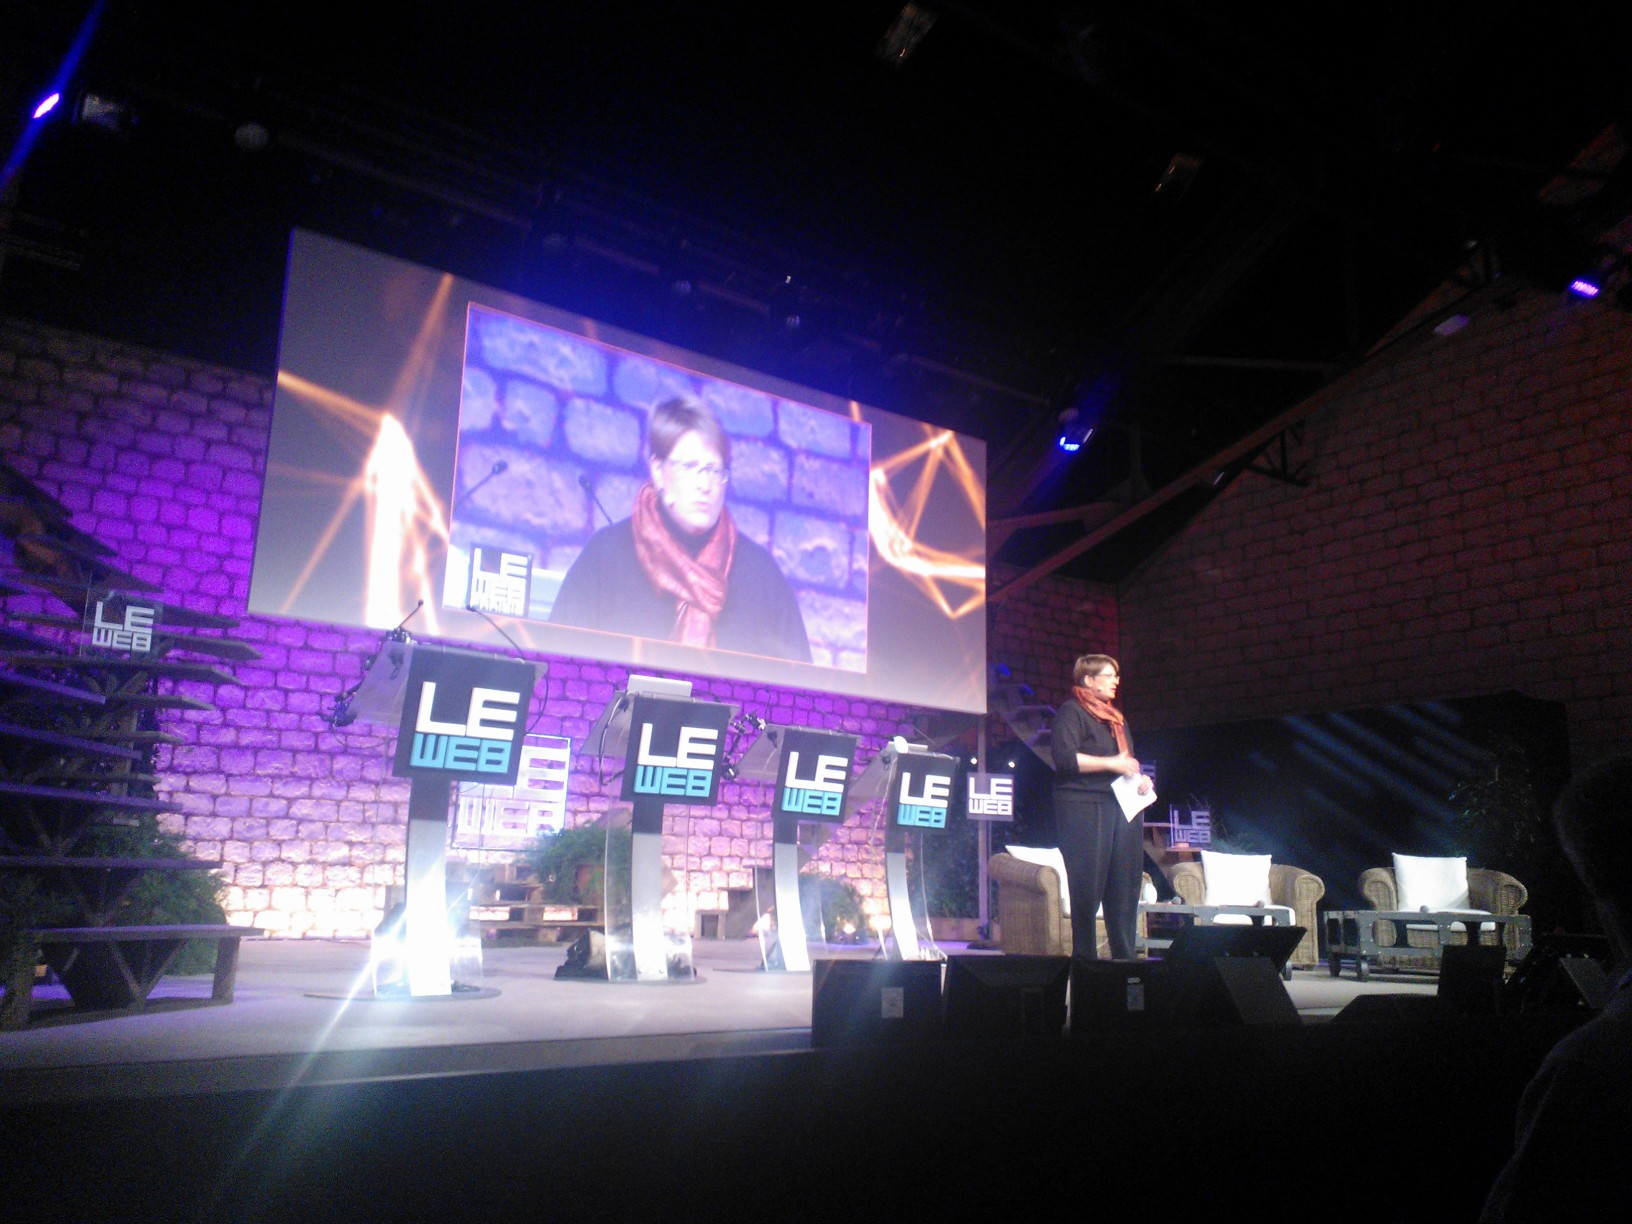 leweb-startupcompetition